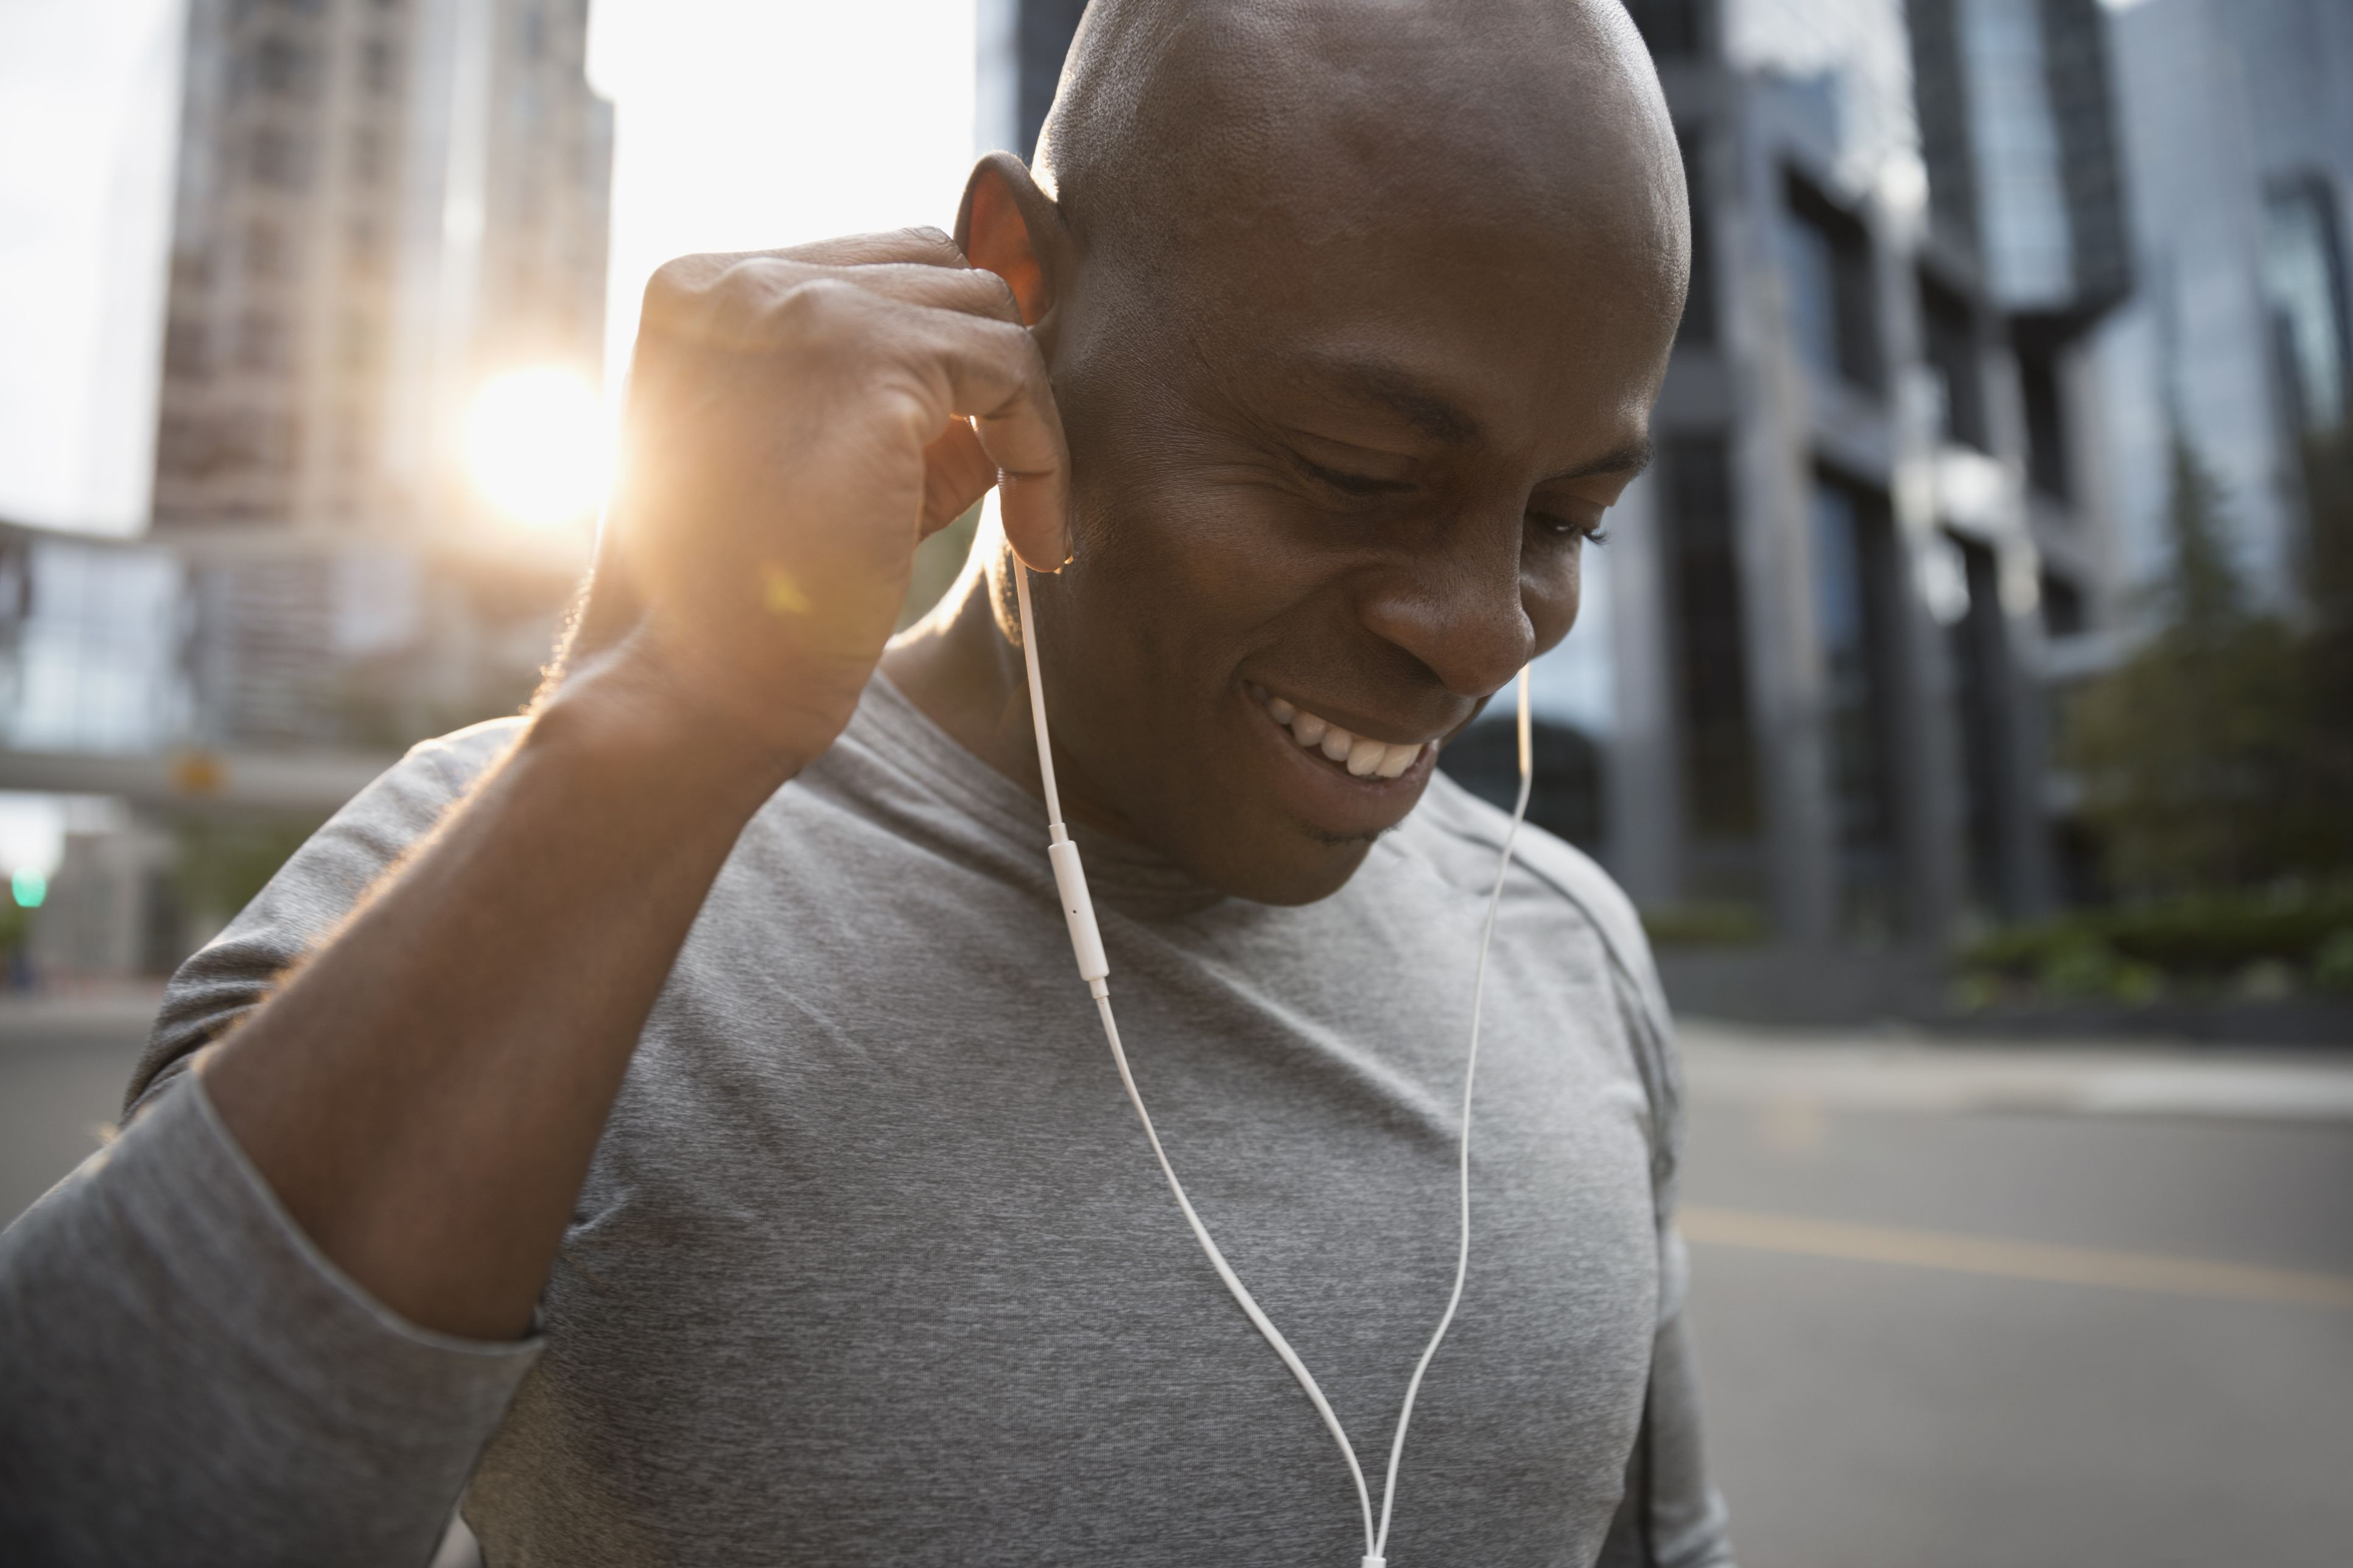 Close up smiling male runner listening to music with earbud headphones on urban street